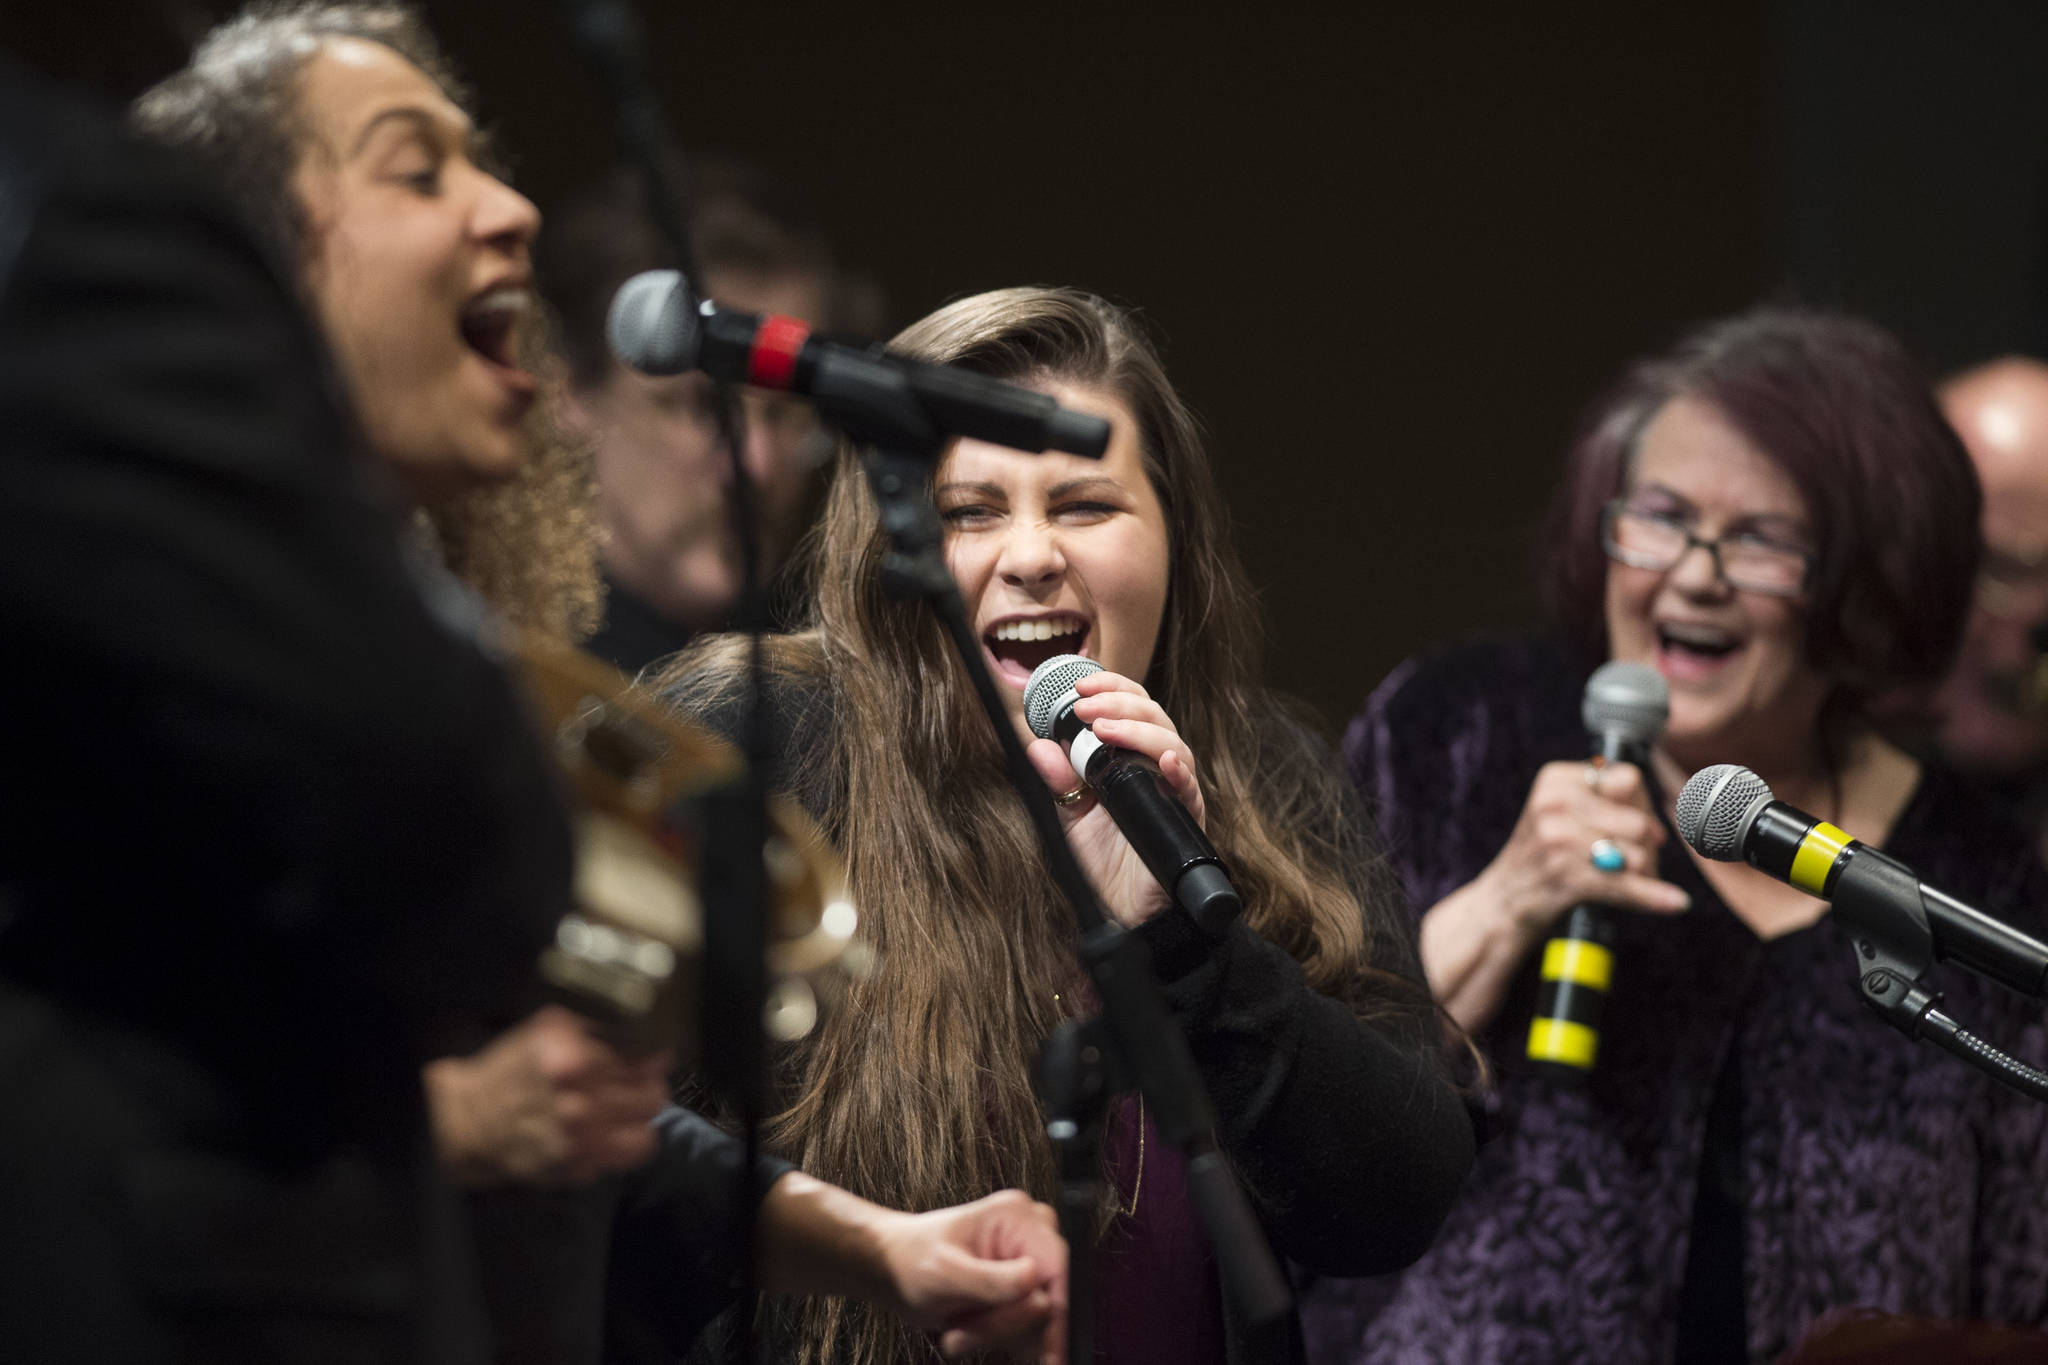 """Alyssa Fischer, center, sings during a performance of """"Motown for Our Town"""" featuring Ryan Shaw, Bobby Lewis, Eustace Johnson, Jaunelle Celaire others at the Juneau Arts & Culture Center on Friday, March 1, 2019. (Michael Penn 